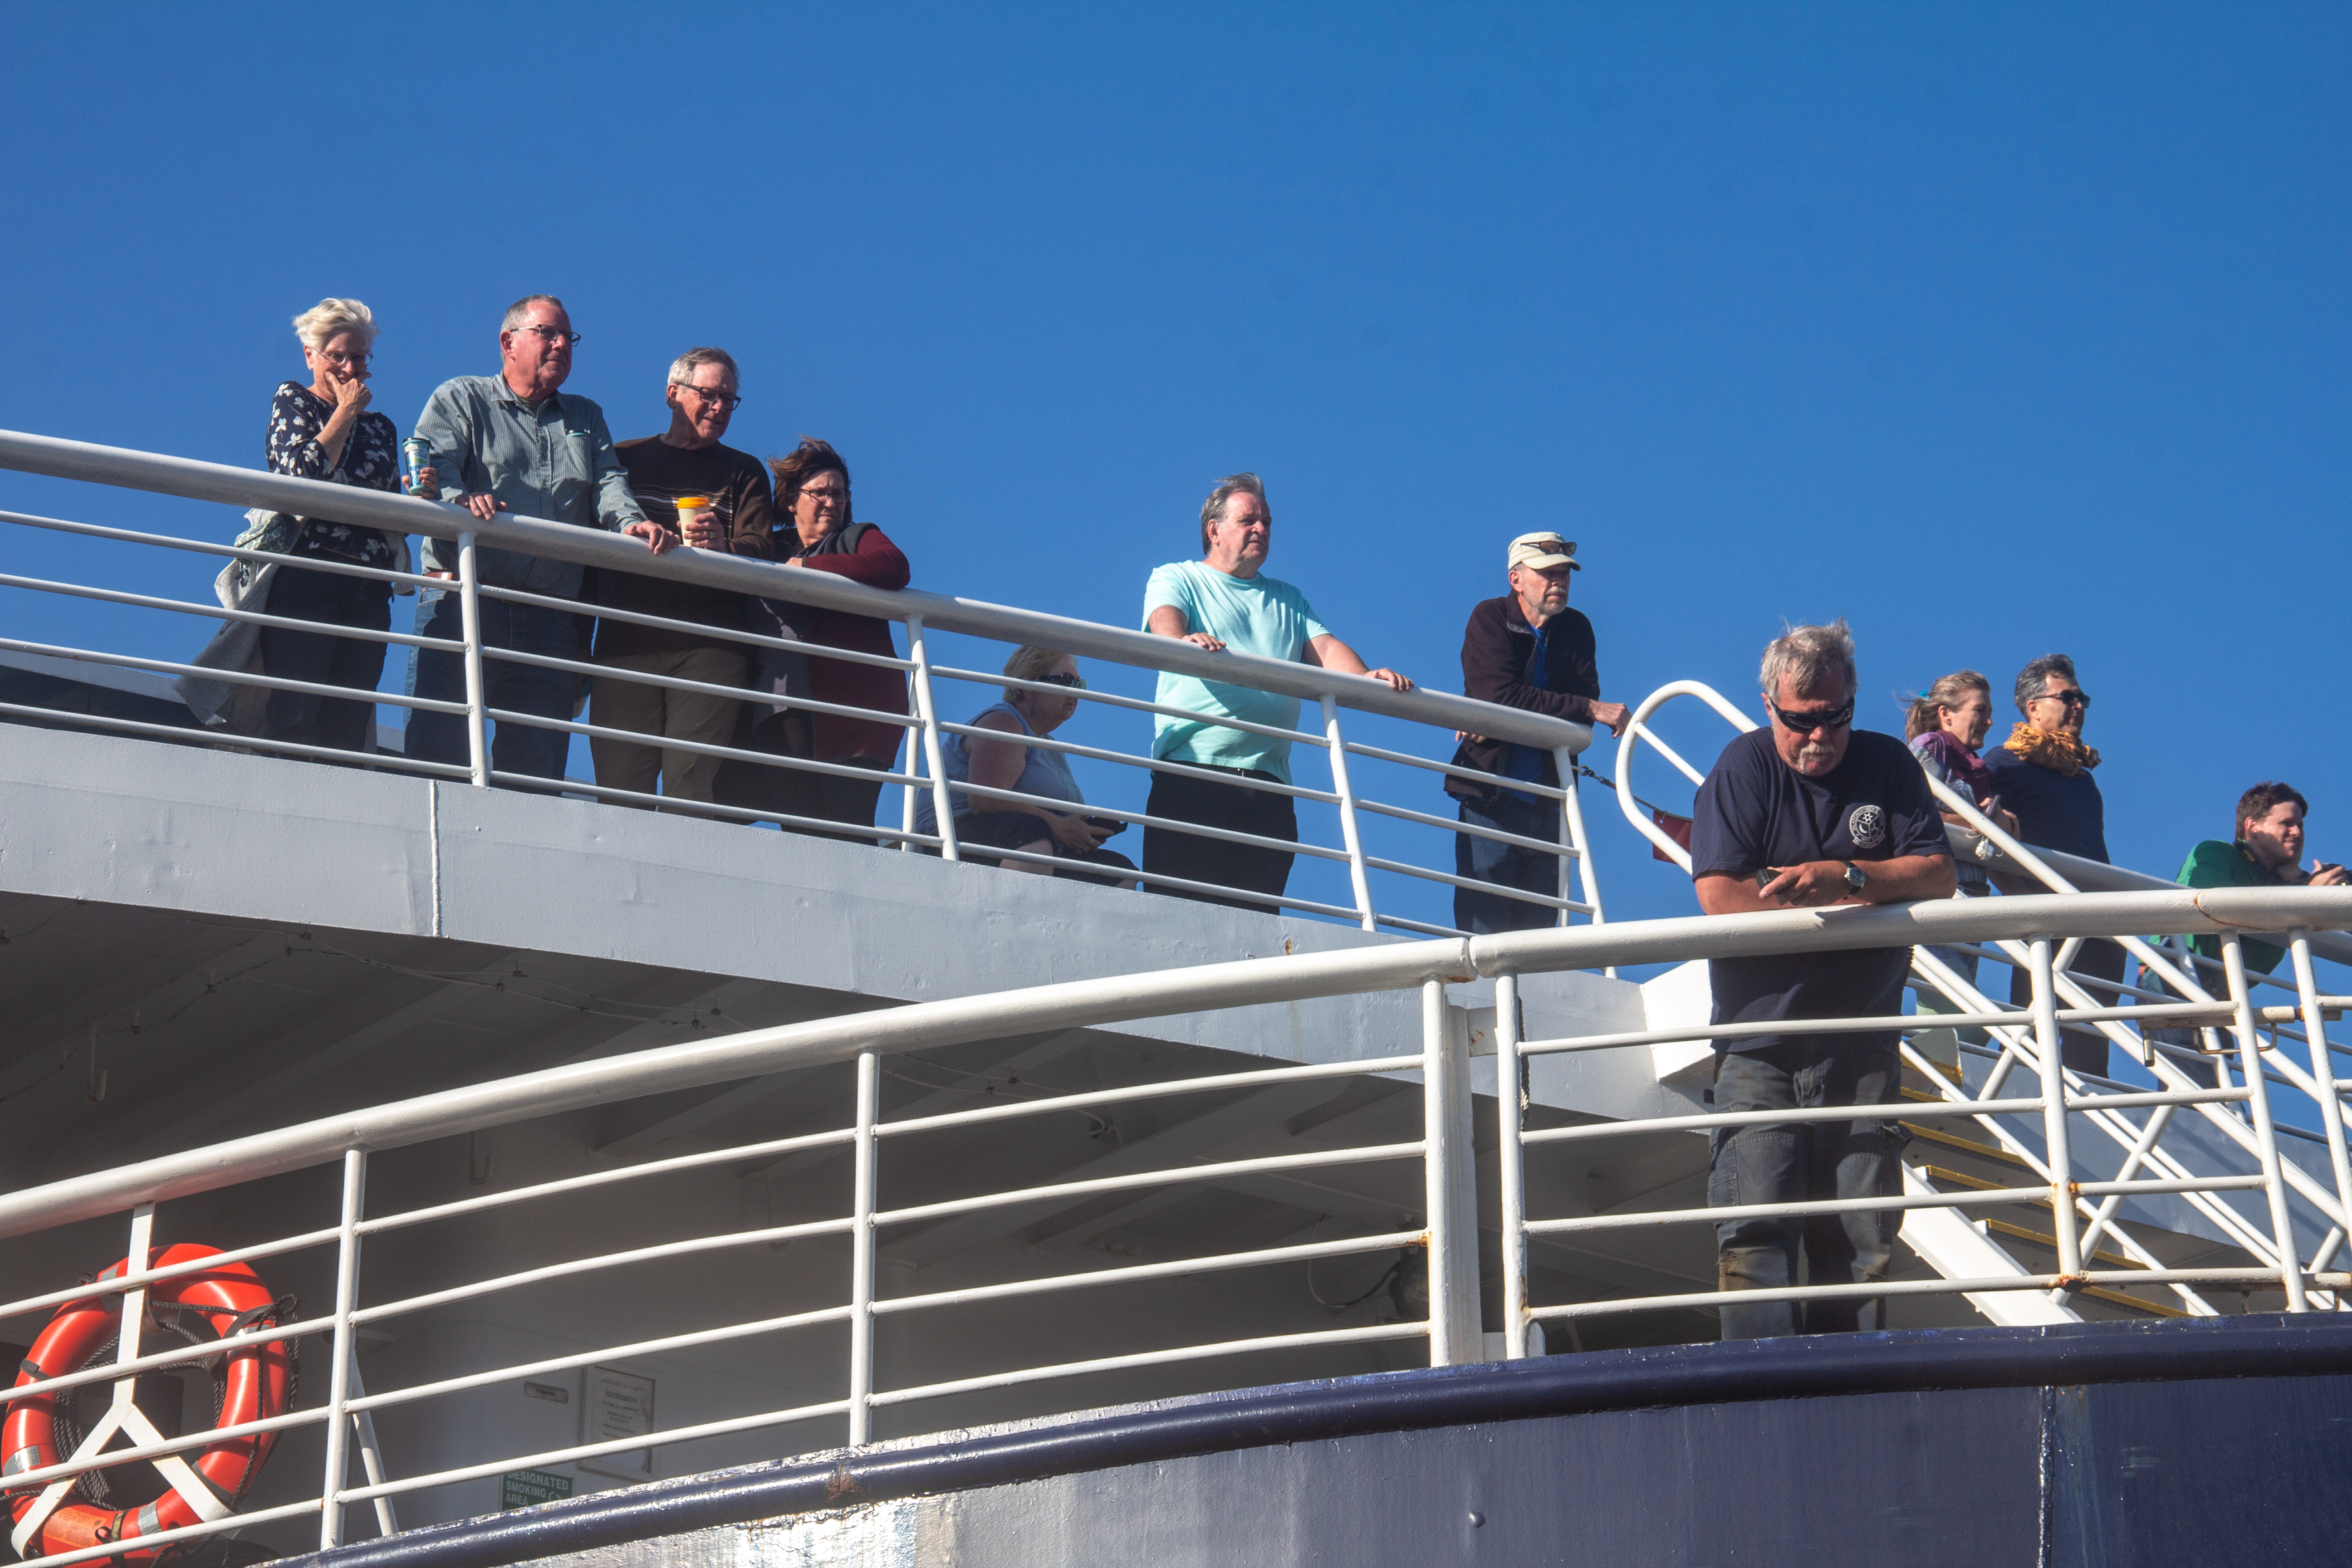 Passengers aboard the Alaska Ferry in Bellingham, Washington. (Photo by Joely Johnson)